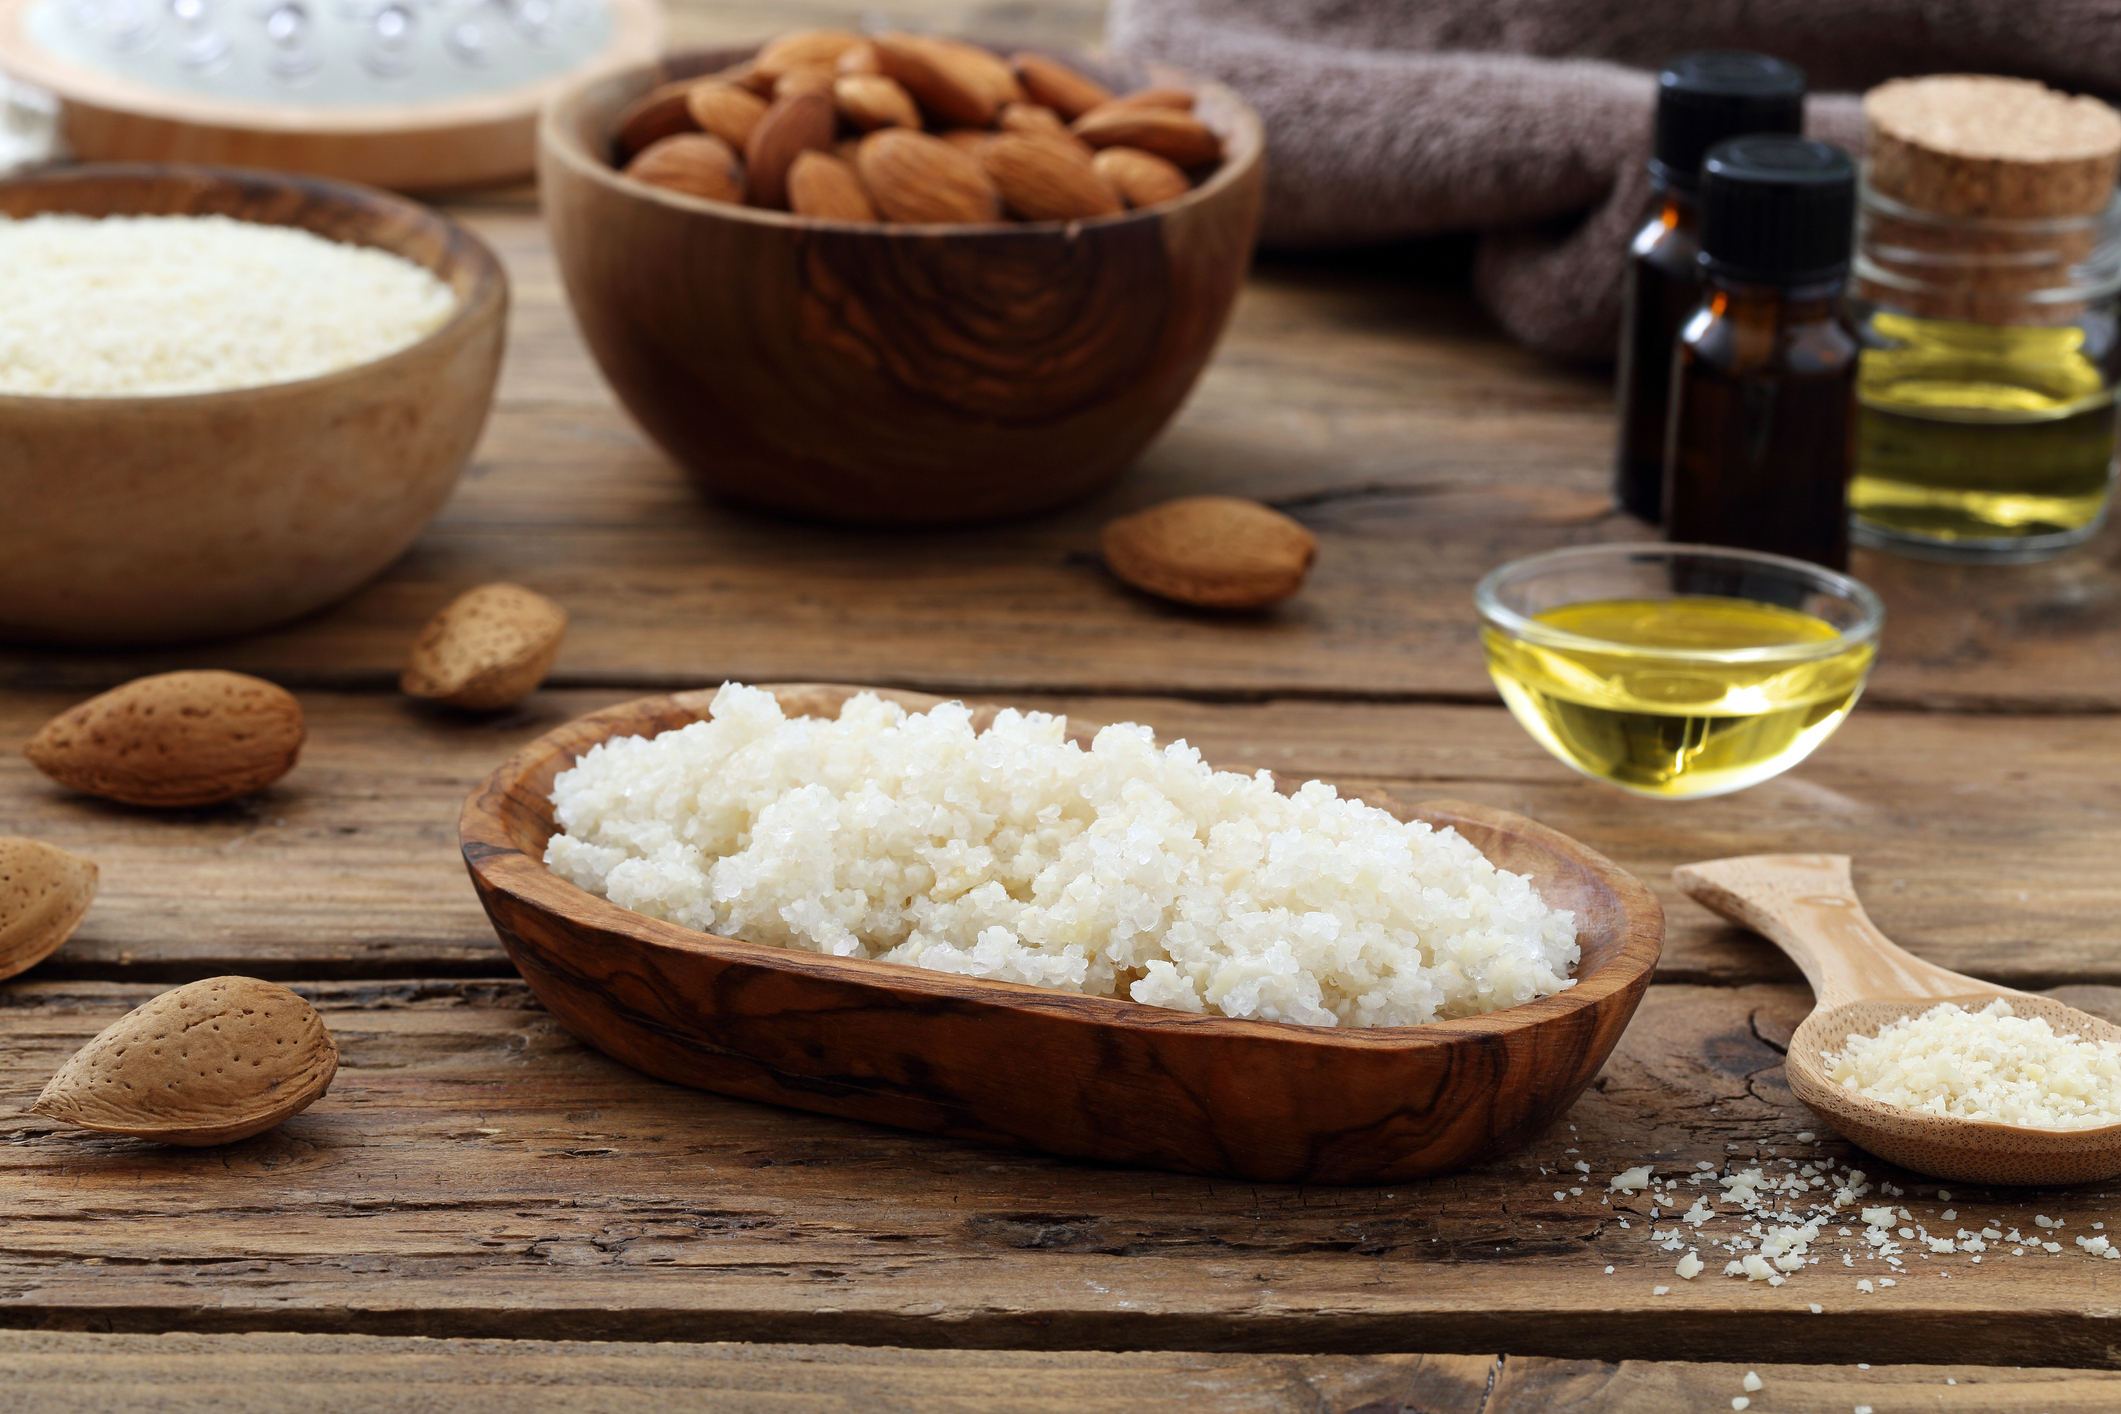 scrub almond products for beauty and body care